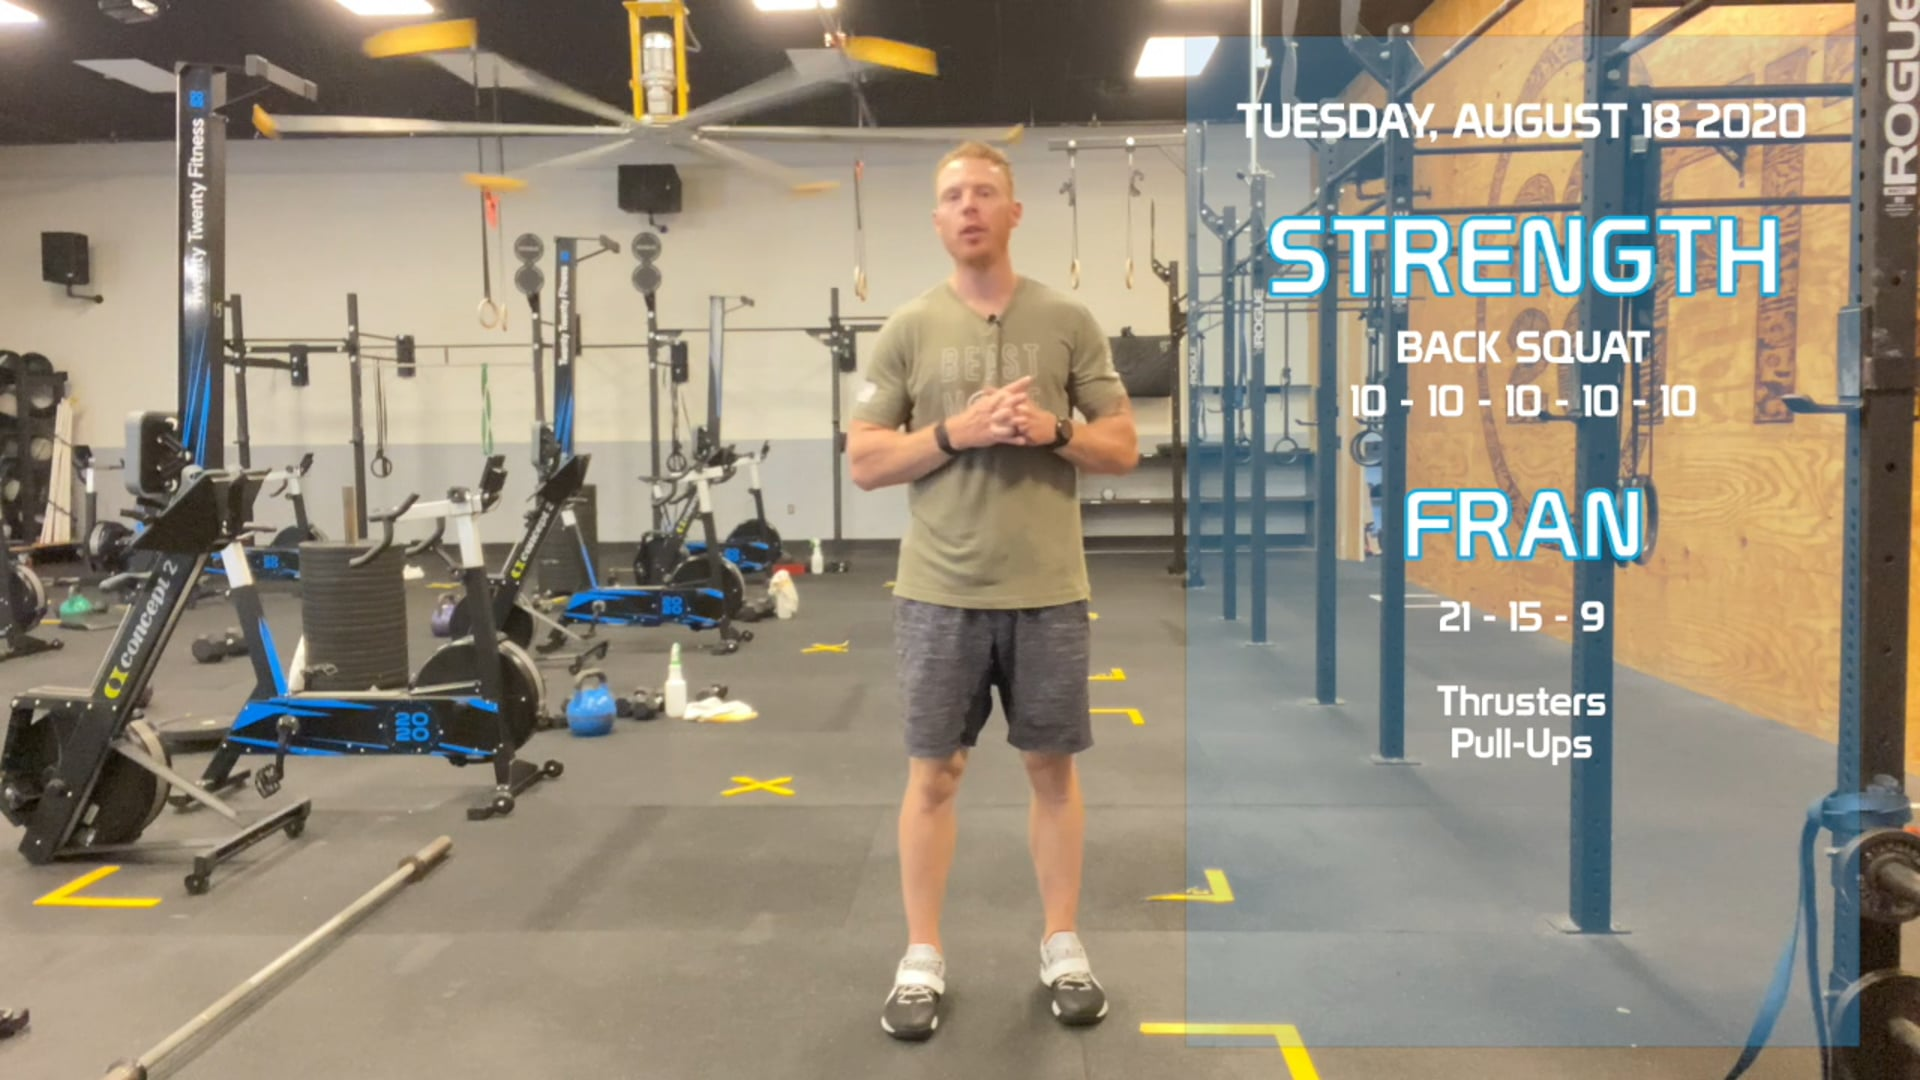 Tuesday August 18th